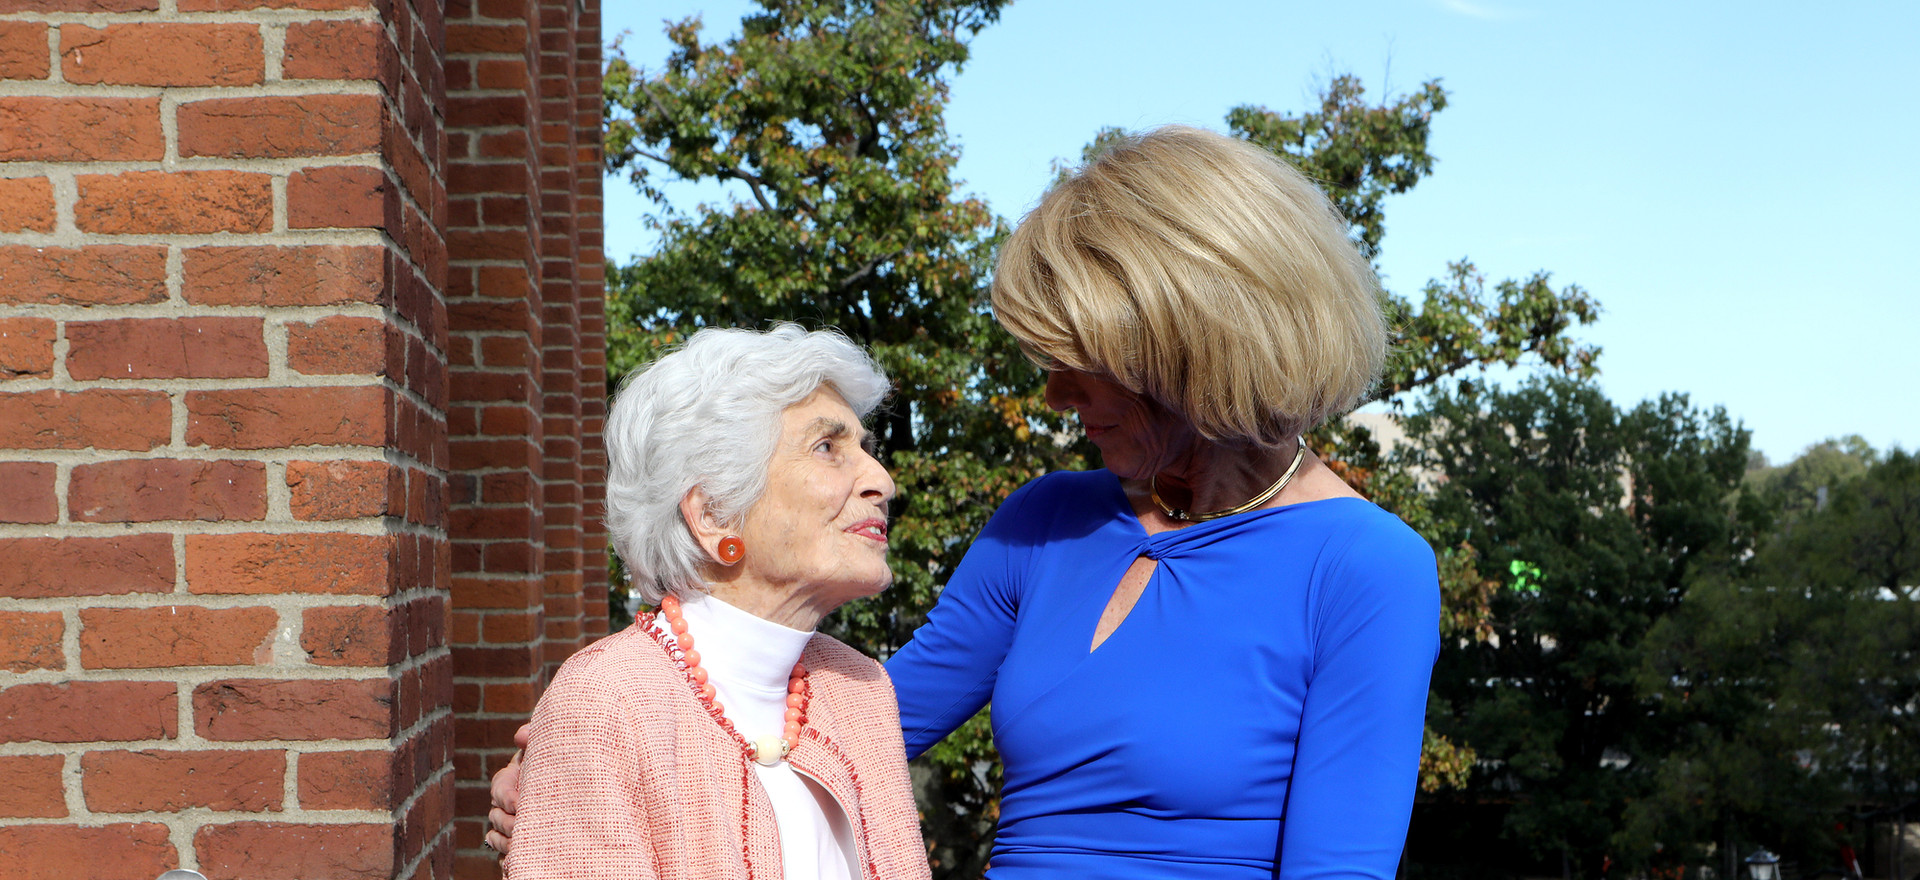 Many friends and family members from across the country supported Dr. Martha Heyburn by attending the Initiative unveiling. Pictured here is Dr. Heyburn, and her mother, Dr. Virginia Keeney.